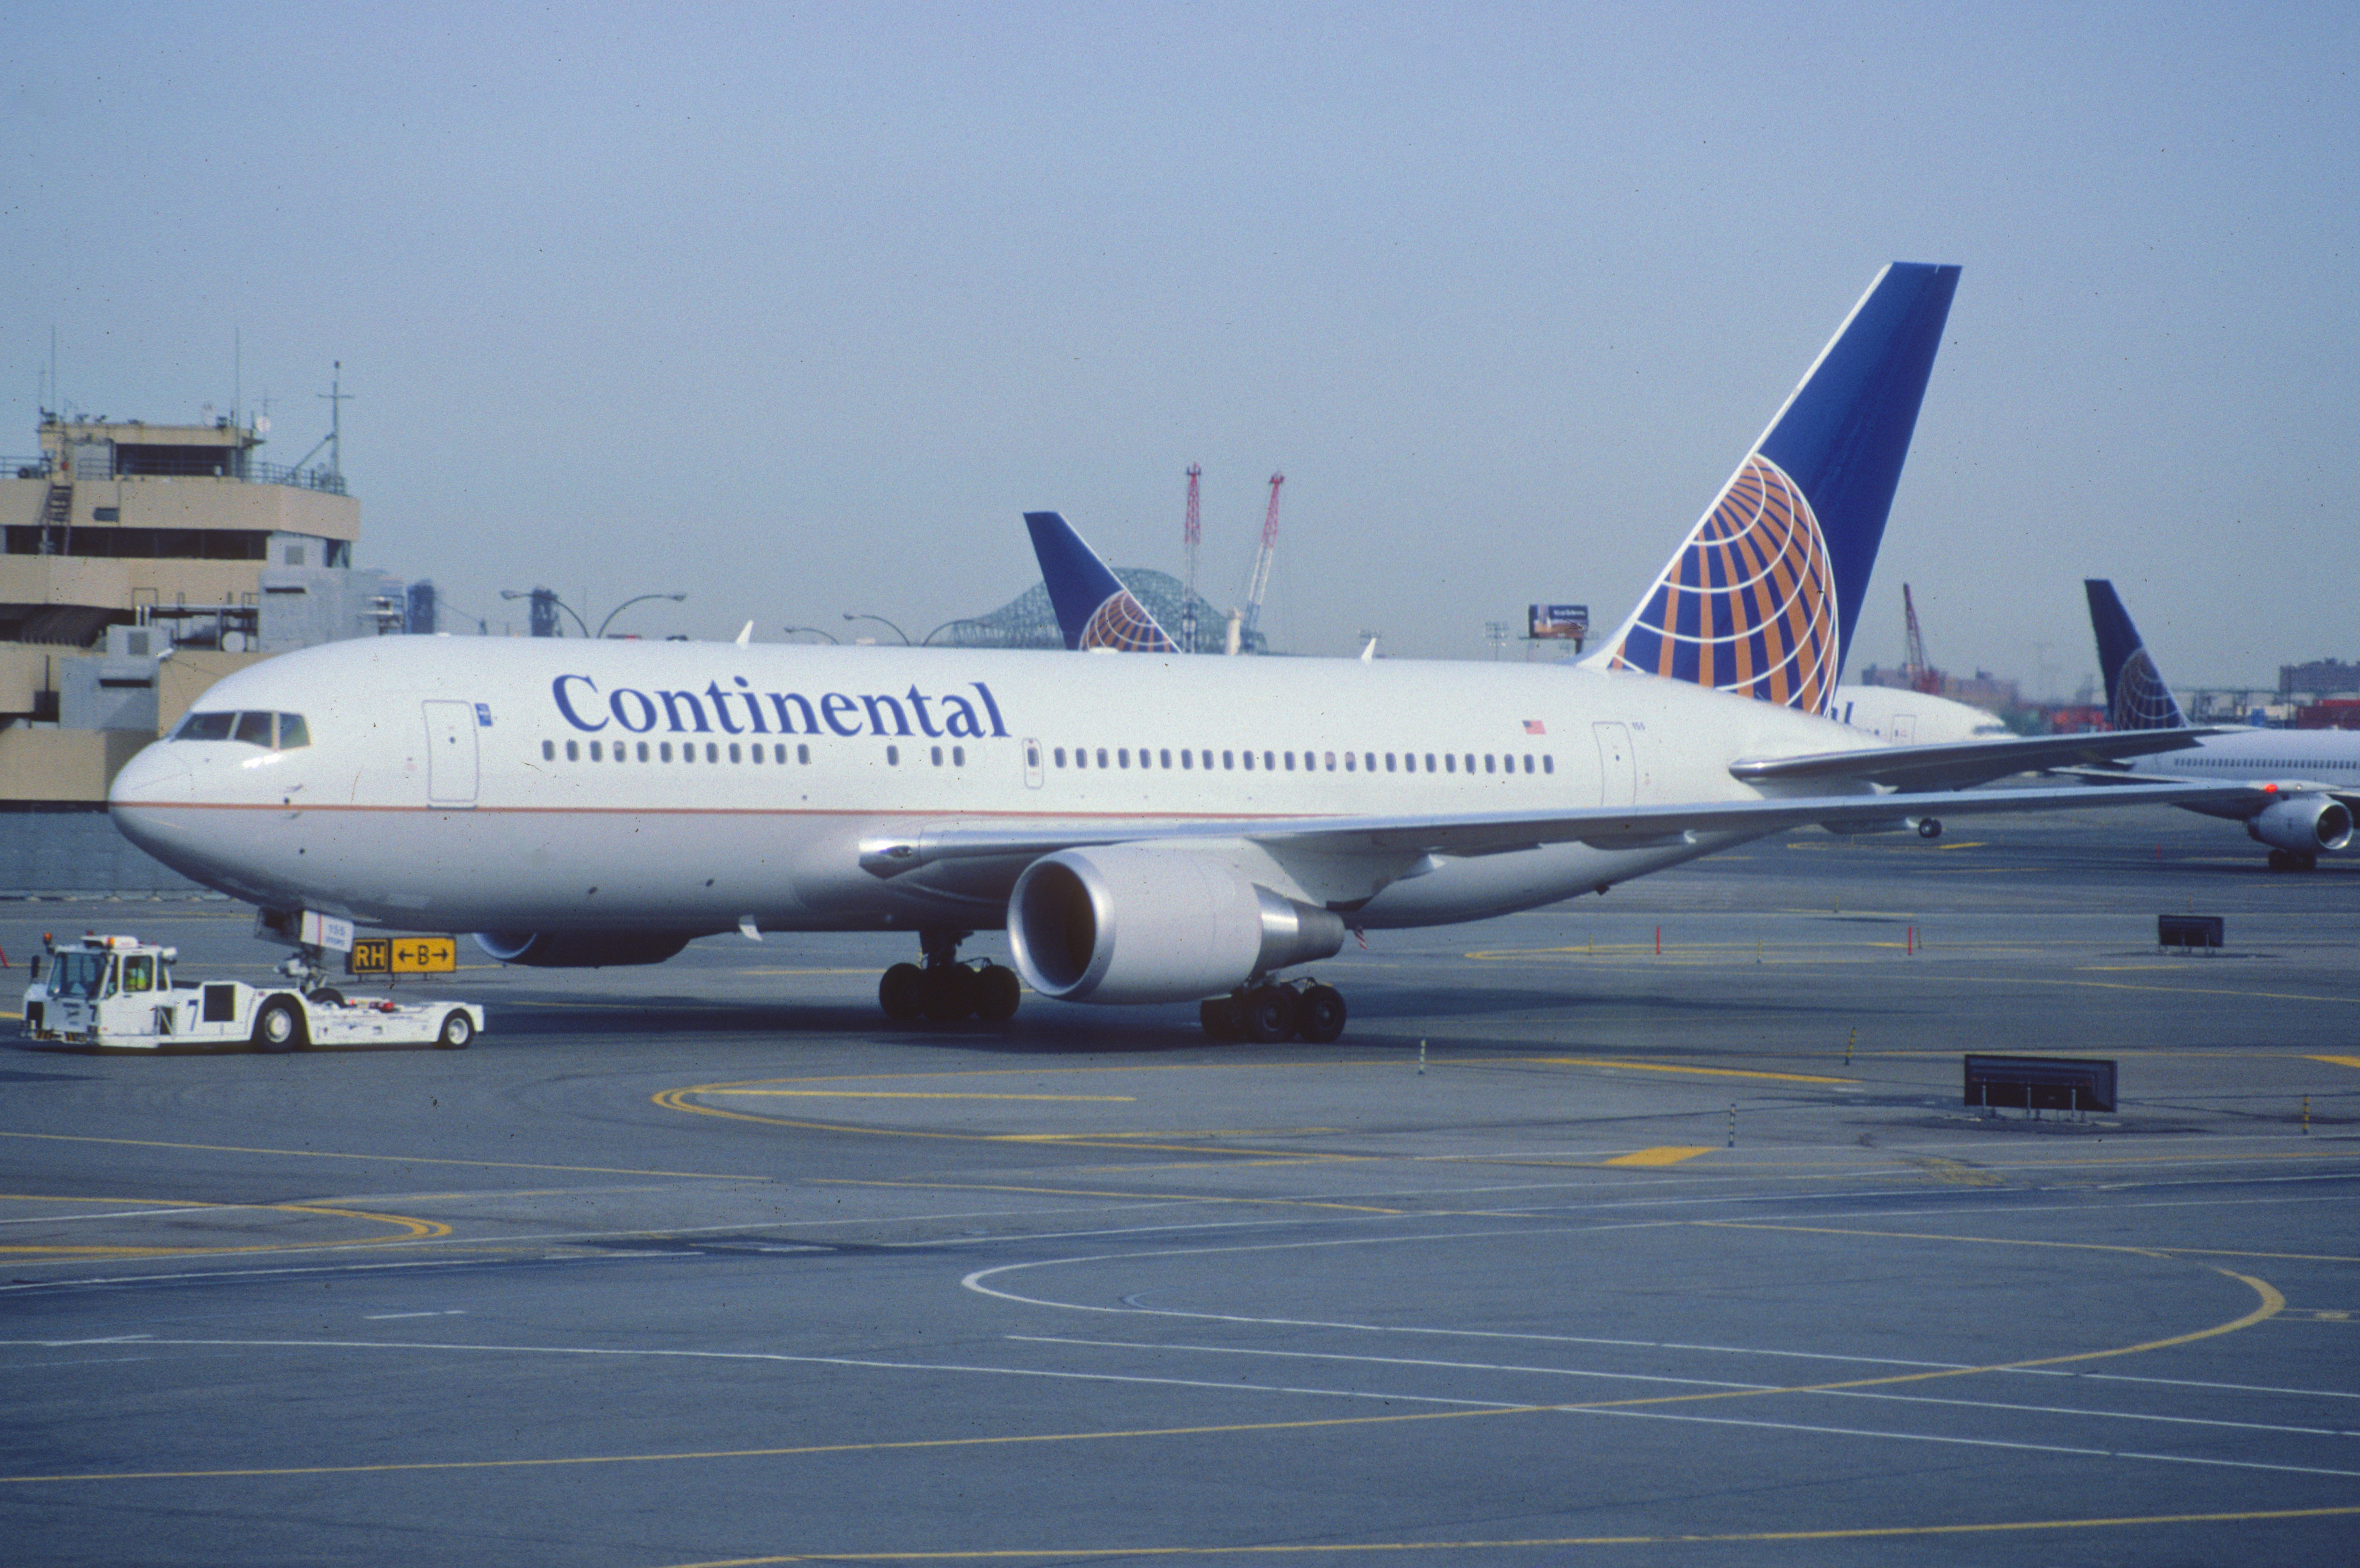 continental airlines A free inside look at continental airlines salary trends 341 salaries for 135 jobs at continental airlines salaries posted anonymously by continental airlines employees.